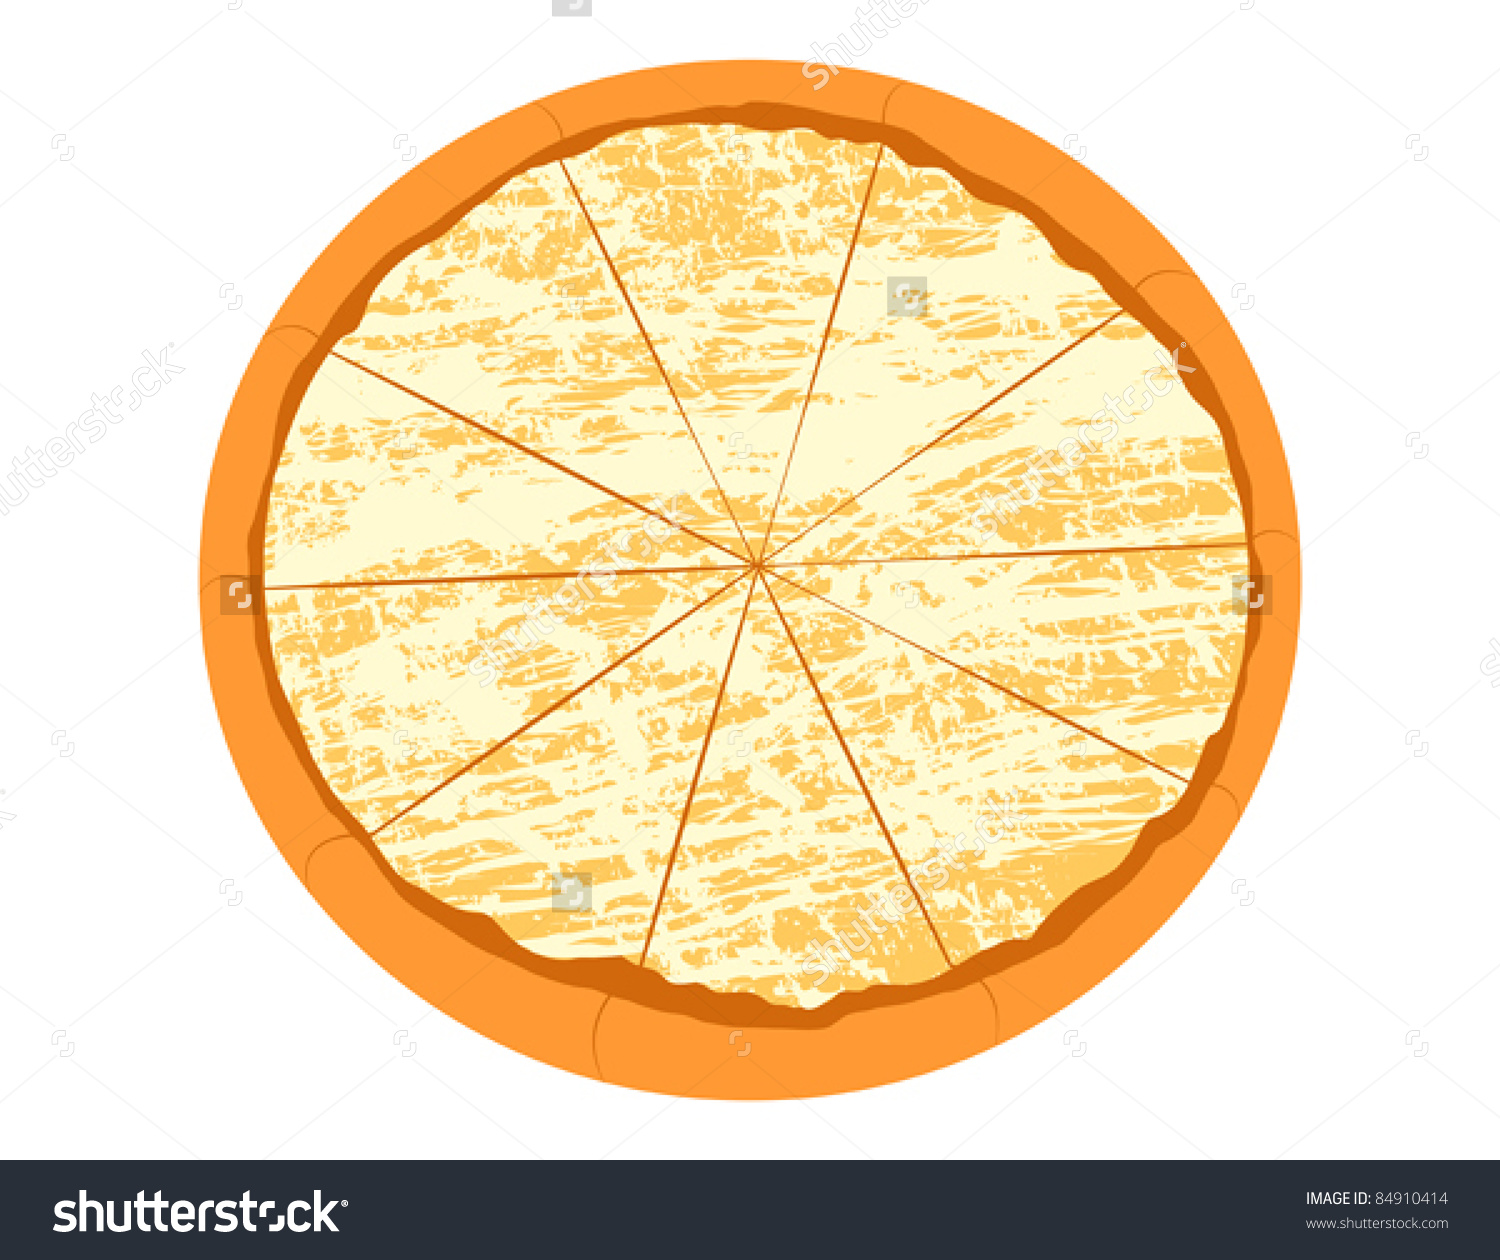 Cheese Pizza Vector .-Cheese Pizza Vector .-7